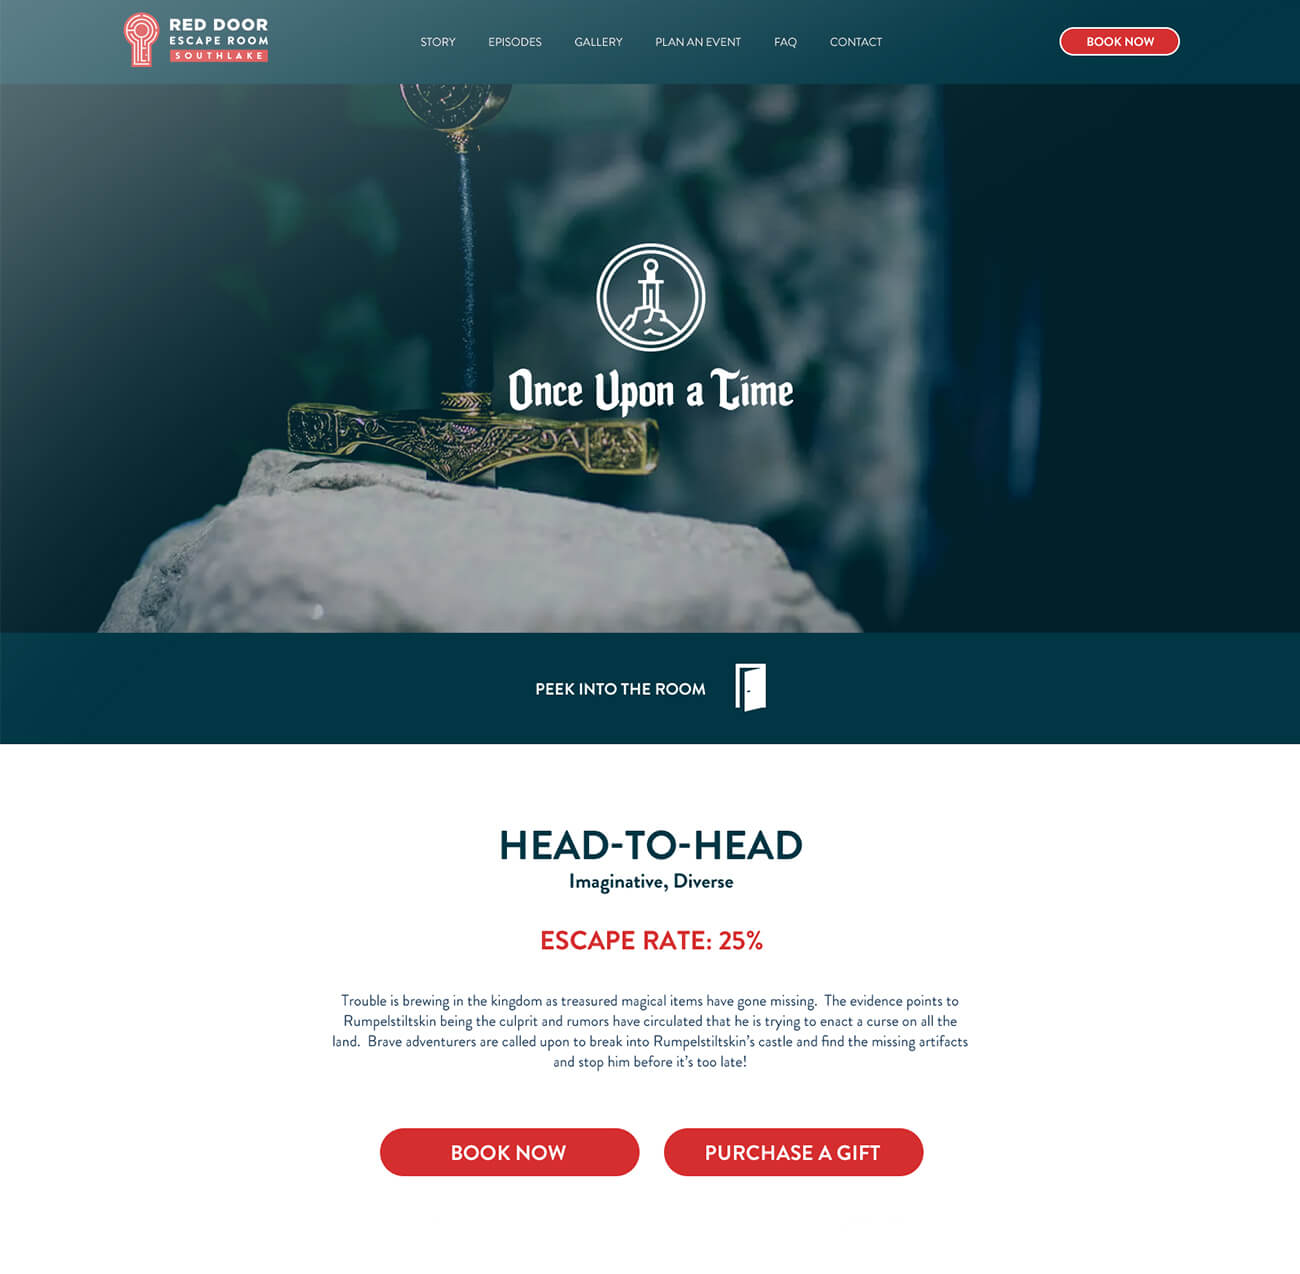 Finsweet Red Door Escape Room website branding feature for web design